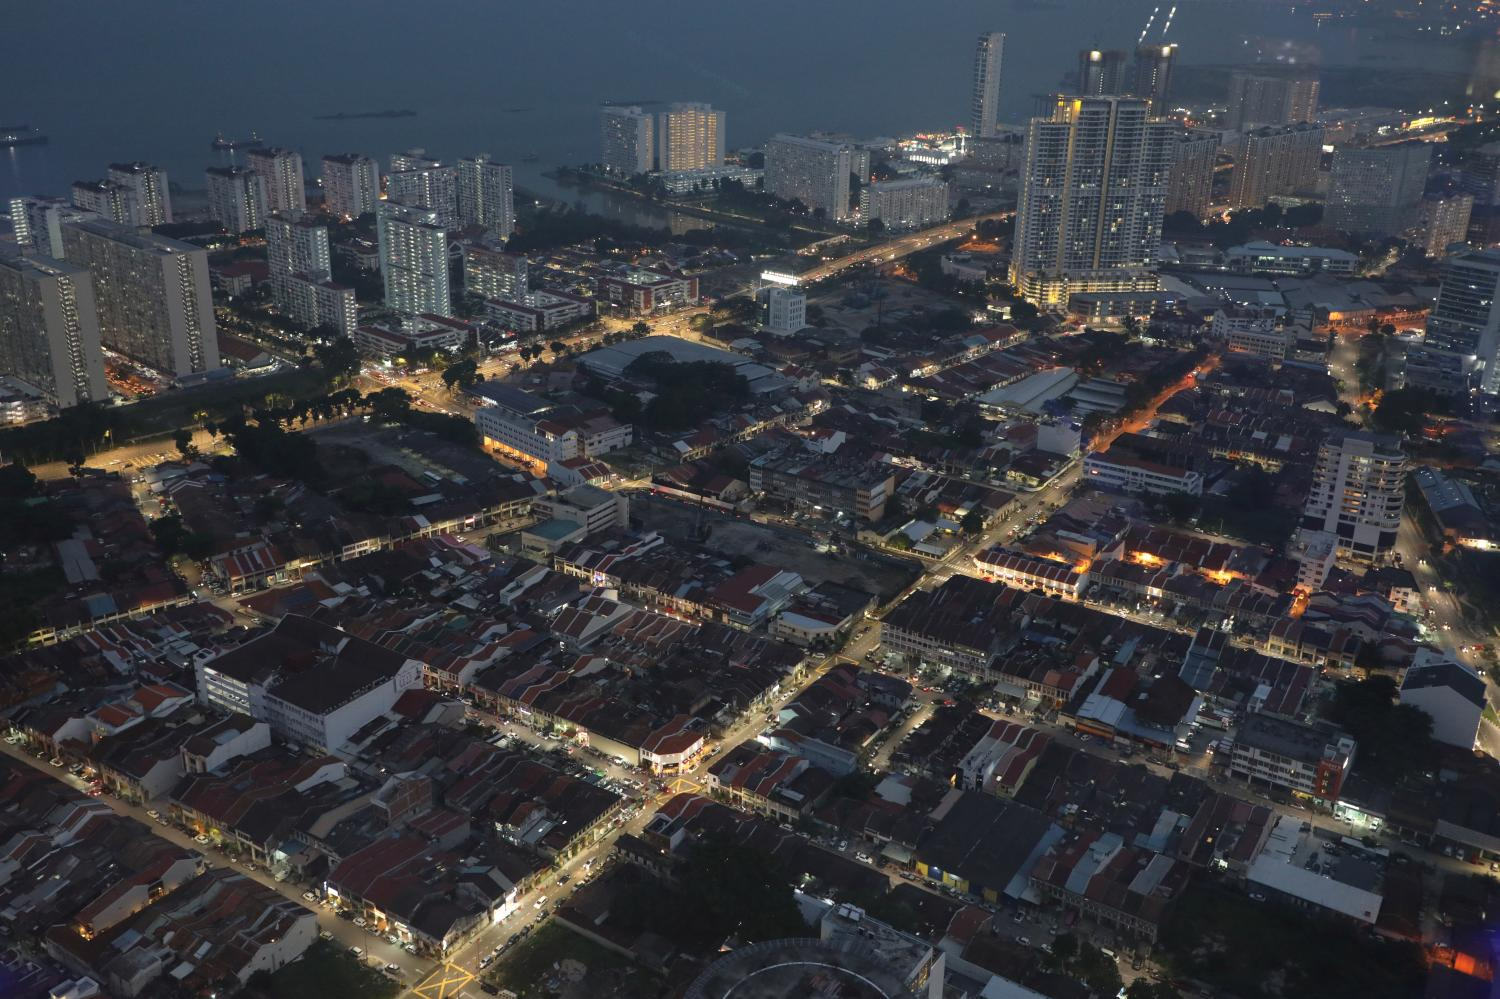 A general view of Penang, once called the 'Silicon Valley of the East' for its massive electrical and electronics industry before it lost its shine to China. (Reuters photo)